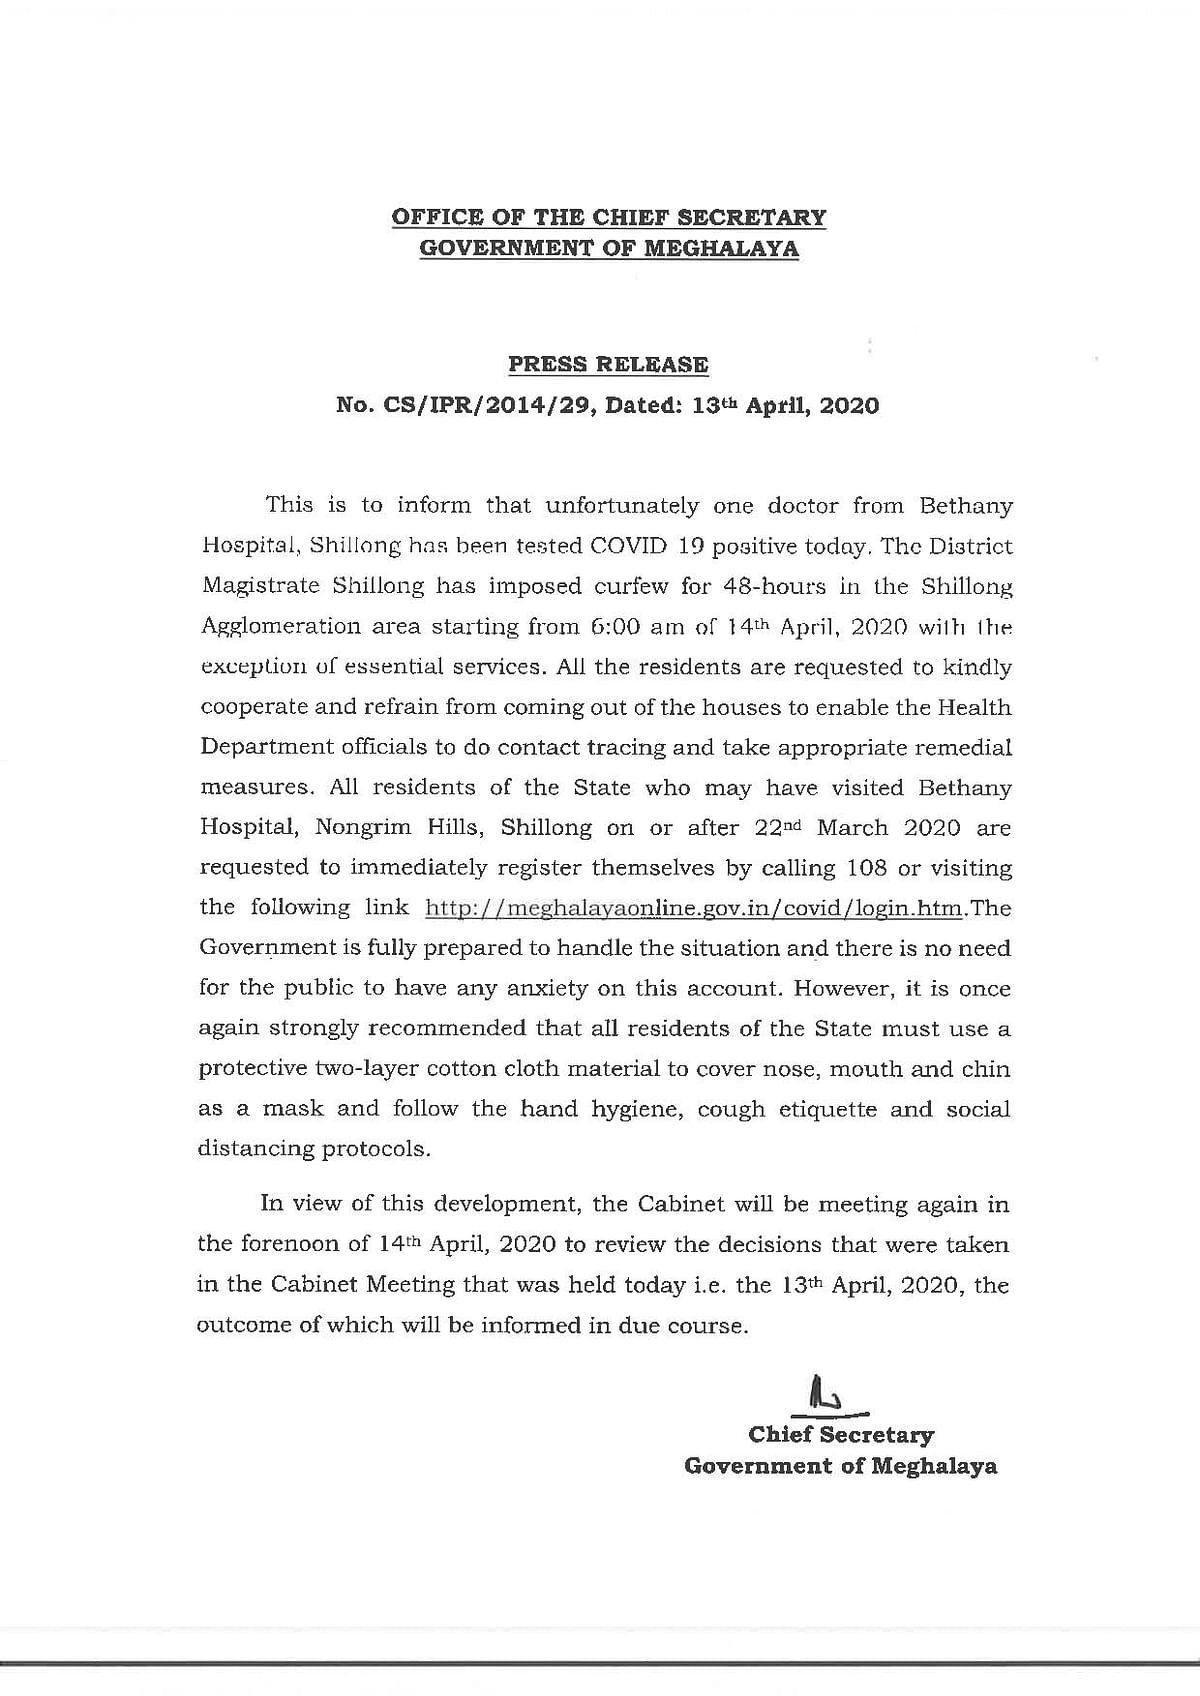 Press release issued by the chief secretary of Meghalaya on Monday